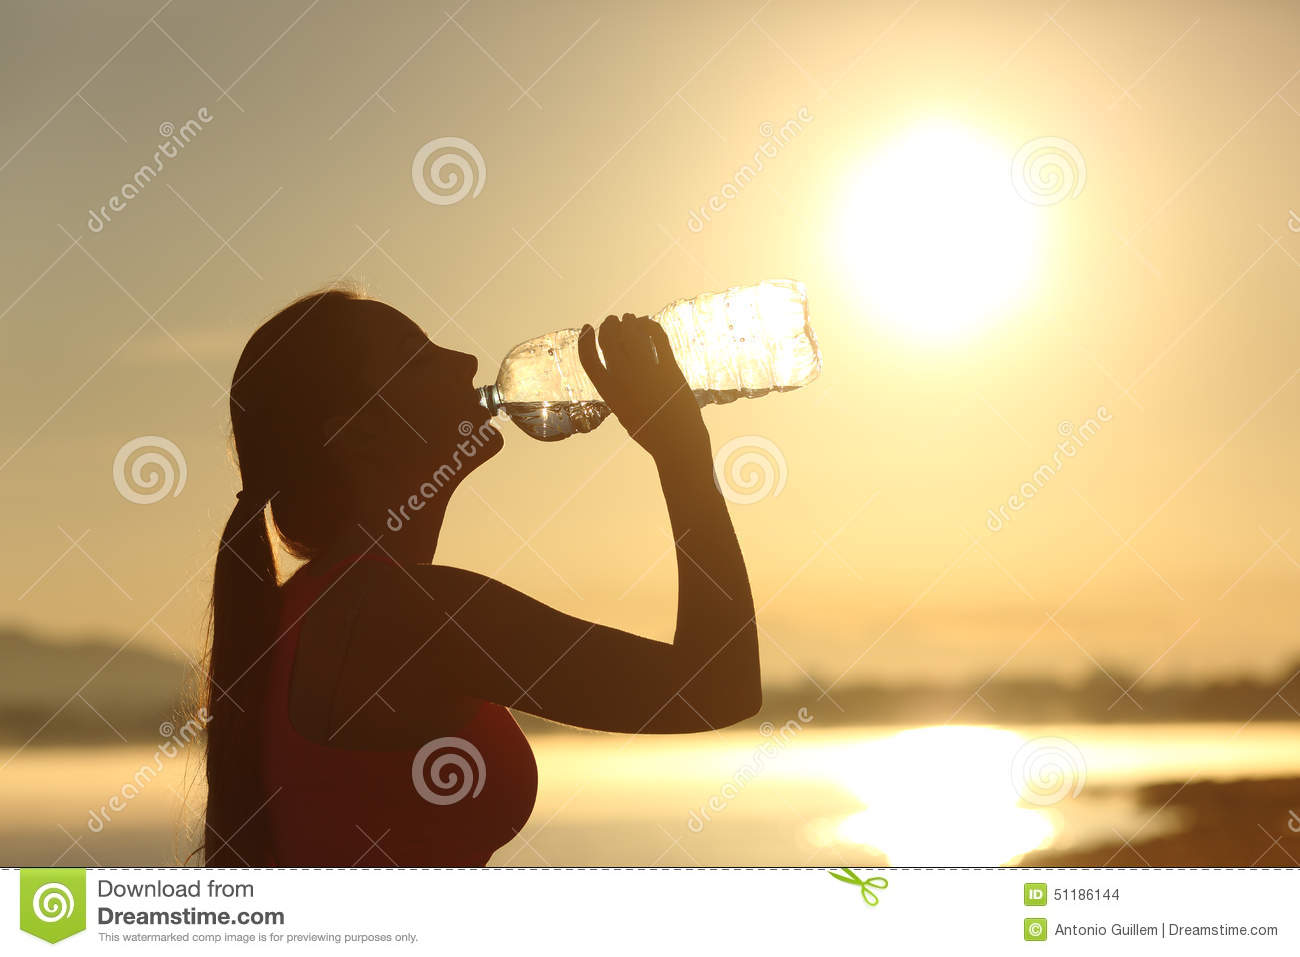 Fitness woman silhouette drinking water from a bottle